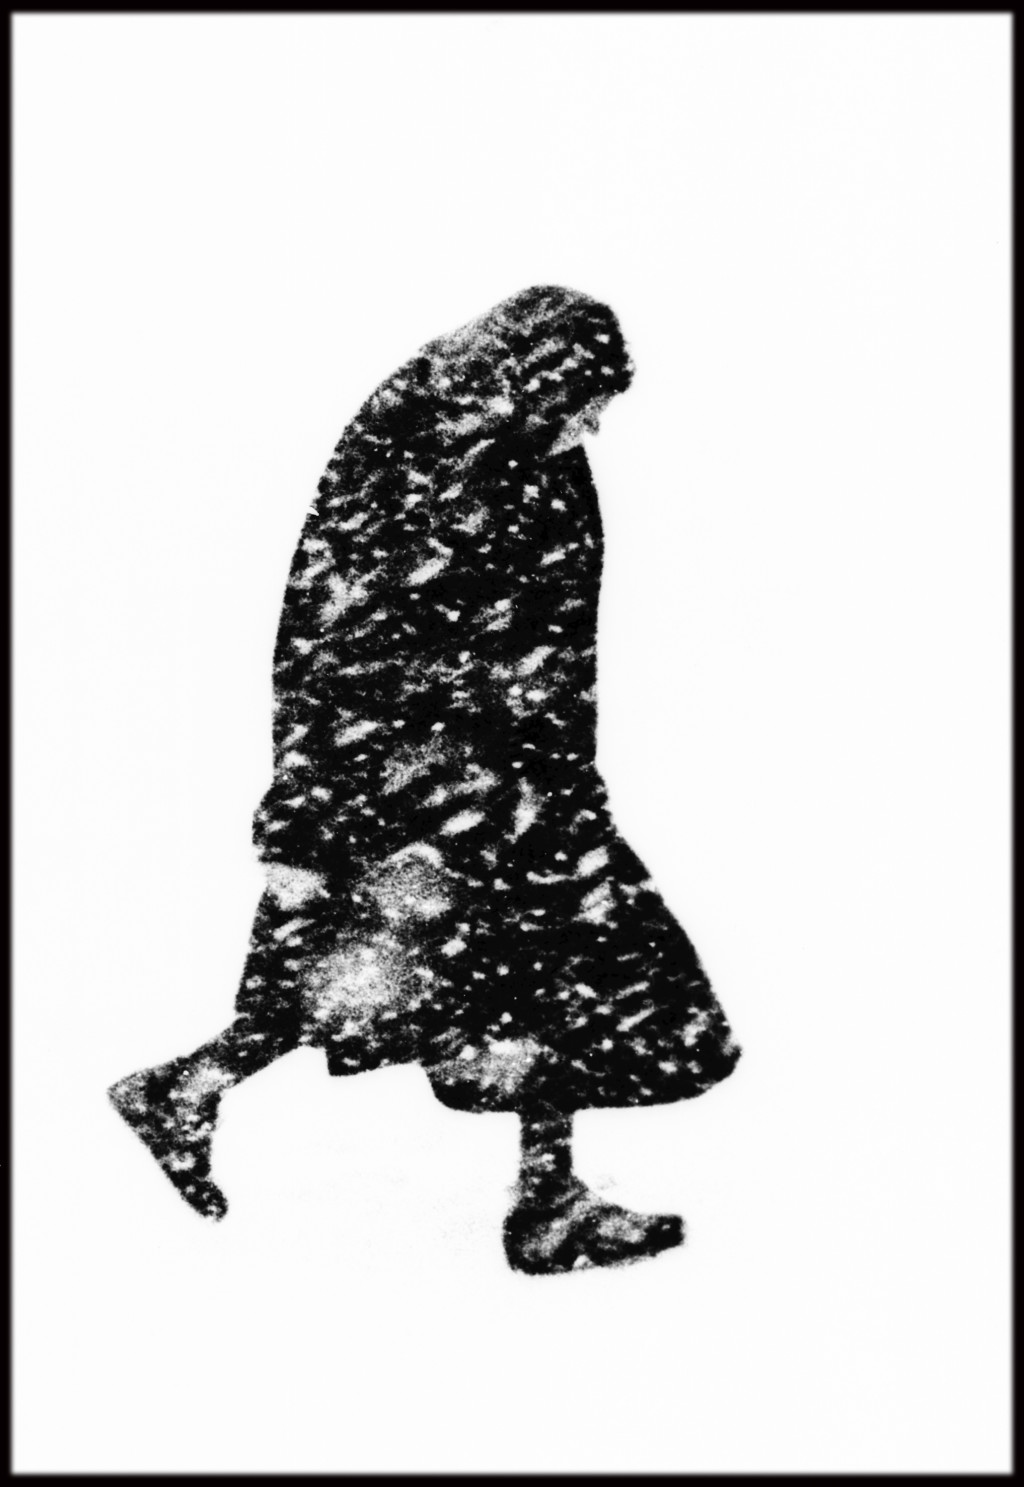 GERMANY, 1954. Hamburg, old woman in a snowstorm.